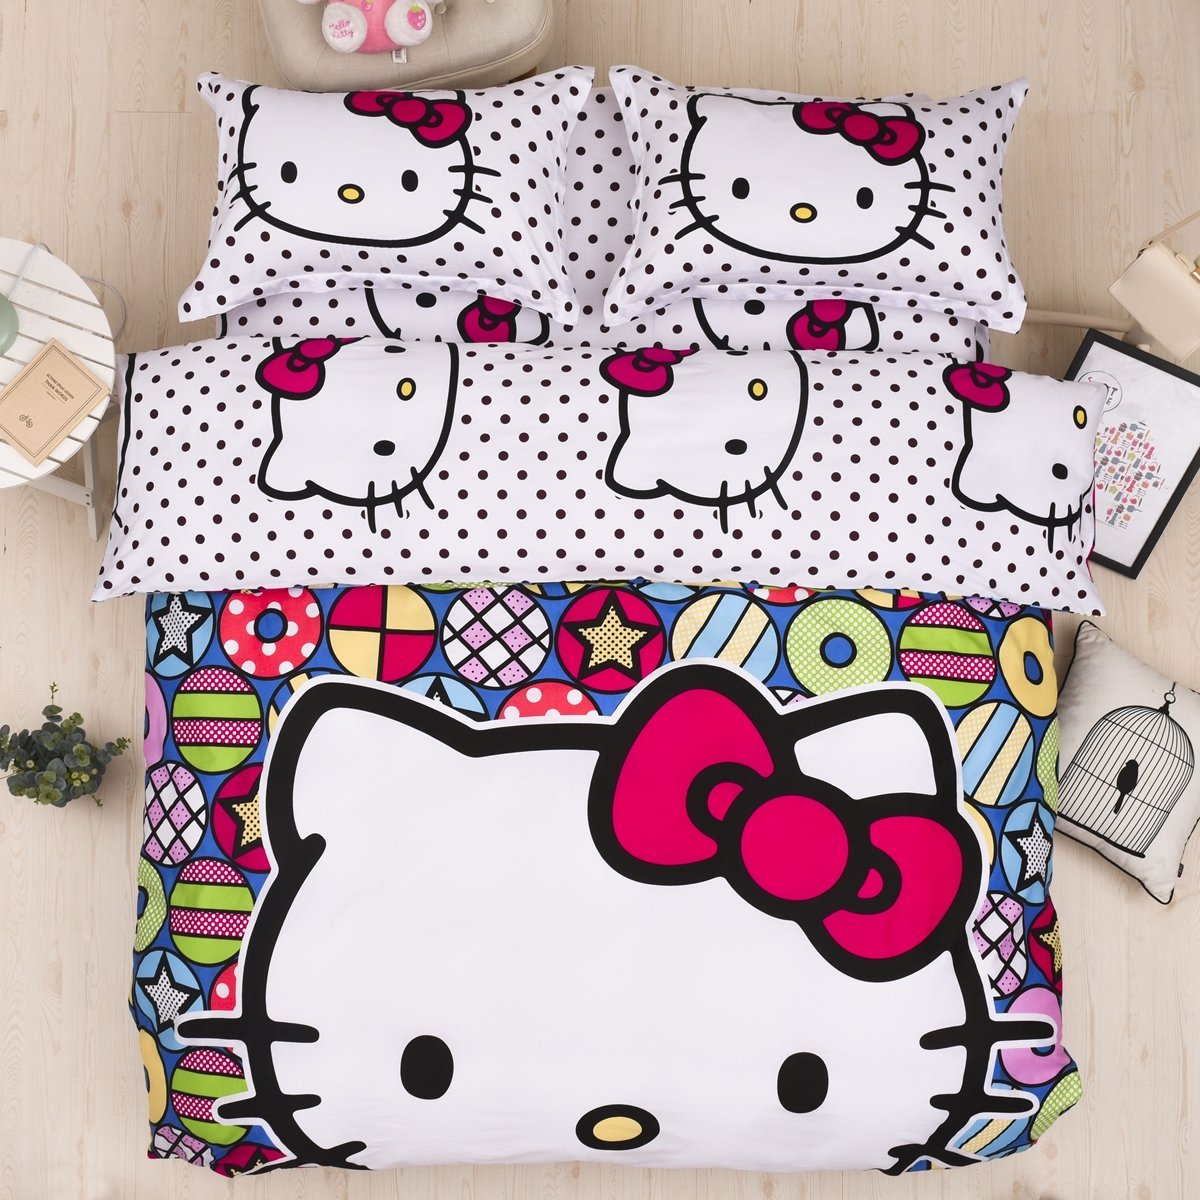 CASA 100% Cotton Kids Bedding Set Girls Hello Kitty Duvet cover and Pillow cases and Fitted Sheet, 4 Pieces, Full